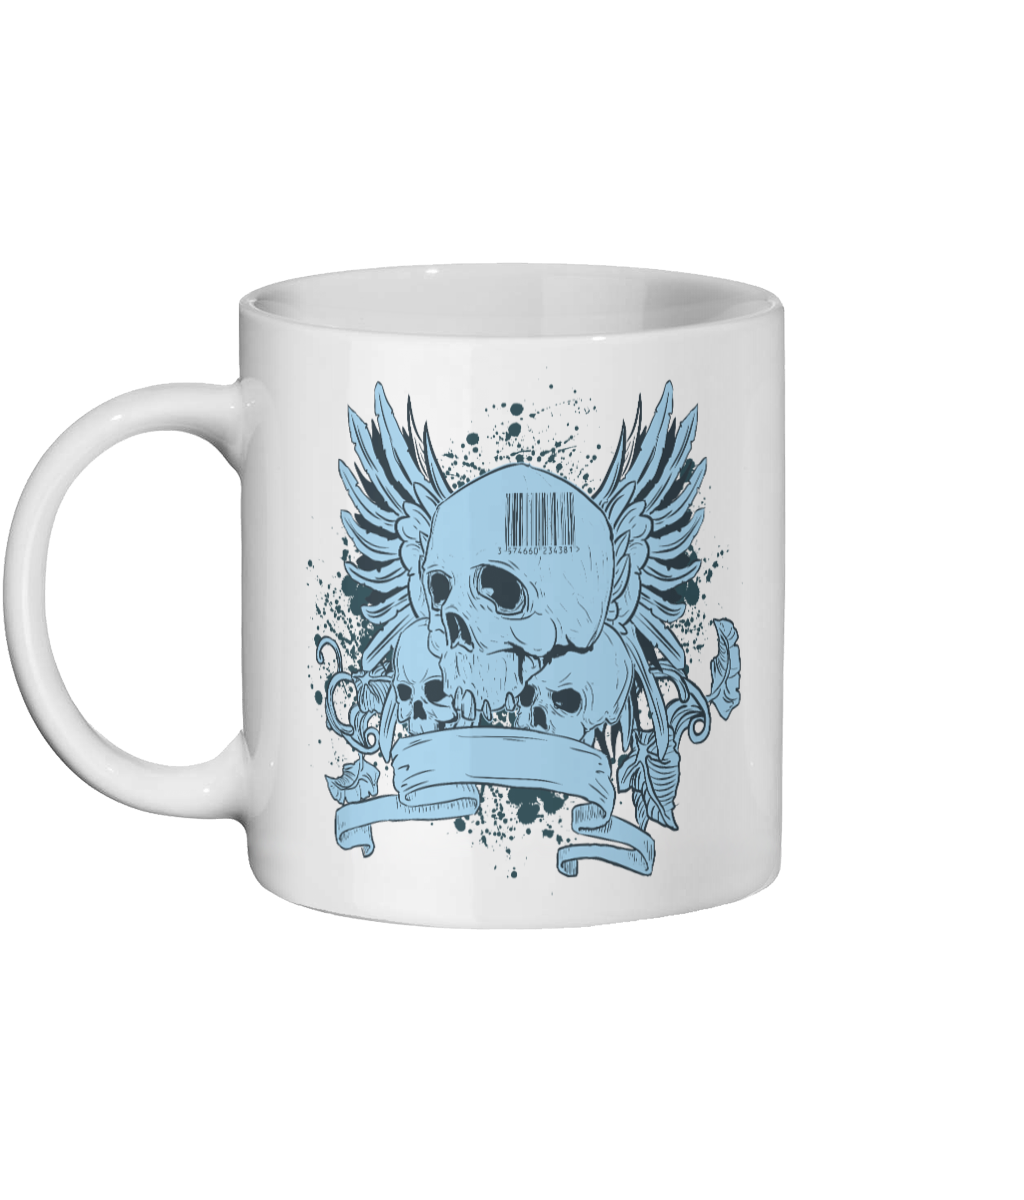 [personalised_mug]Urban Design Skull-Personalised Custom Mug - status mugs